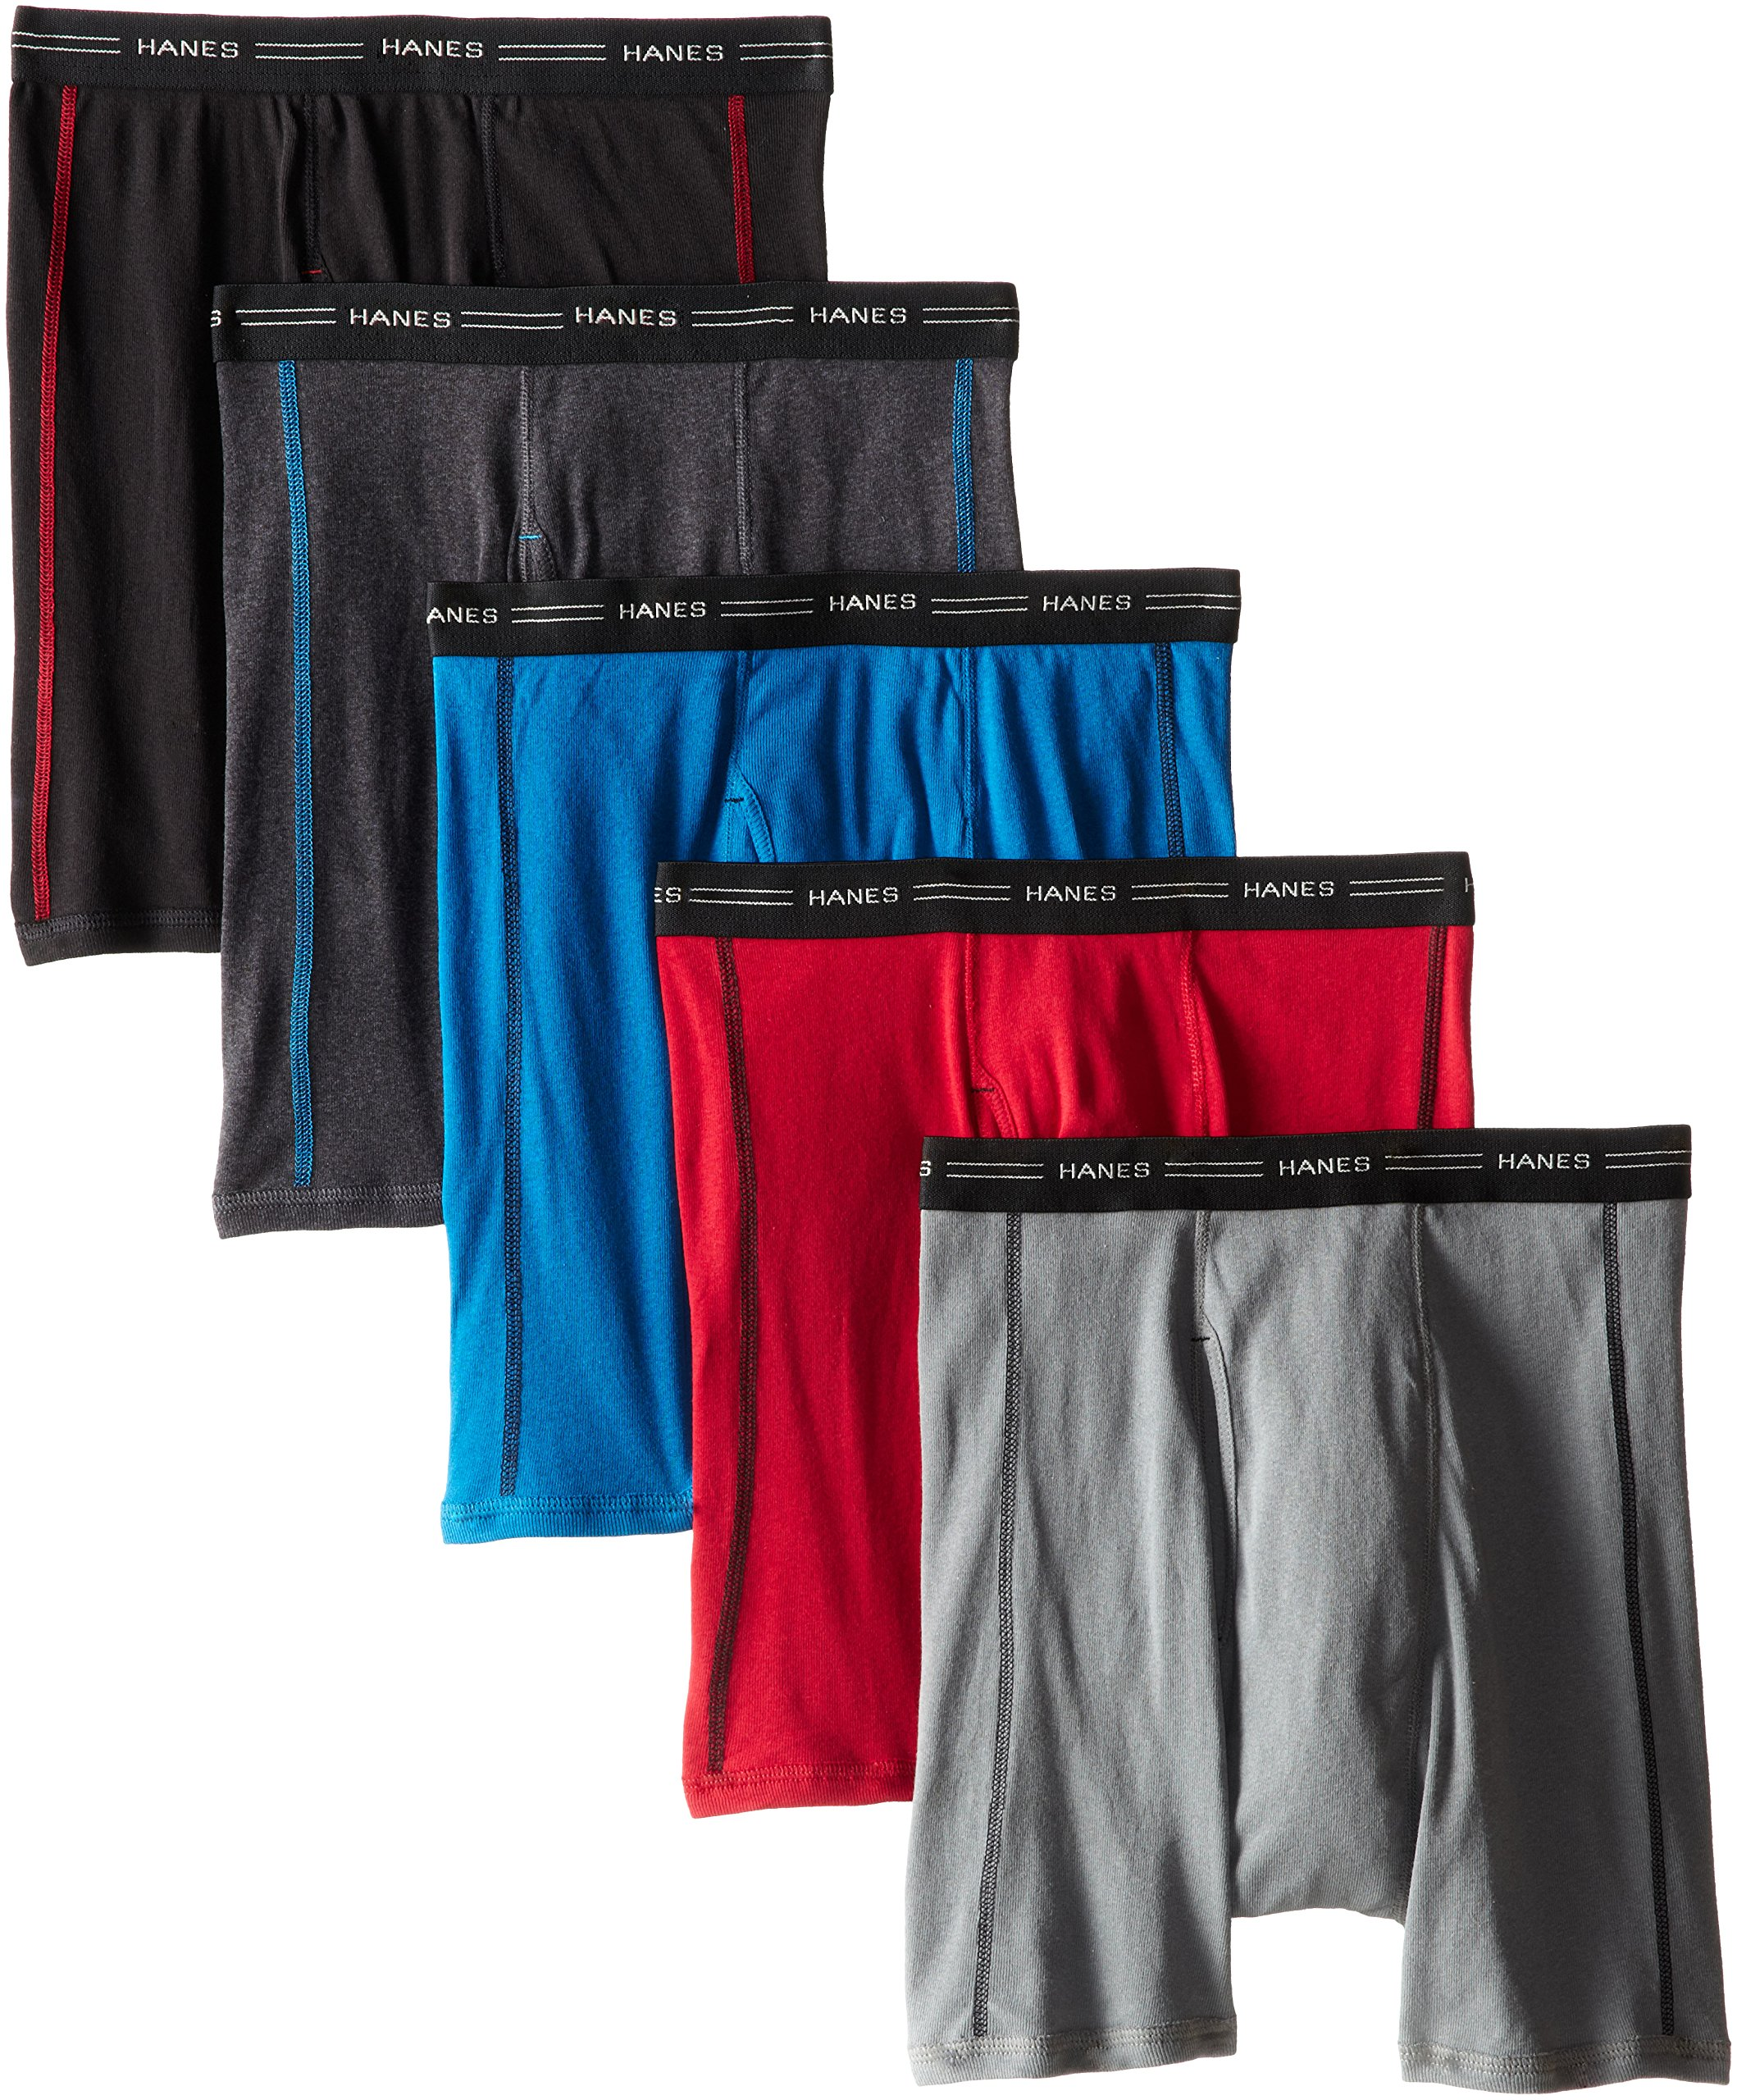 Hanes Men's 5-Pack Sports-Inspired FreshIQ Boxer Brief, Assorted, Large